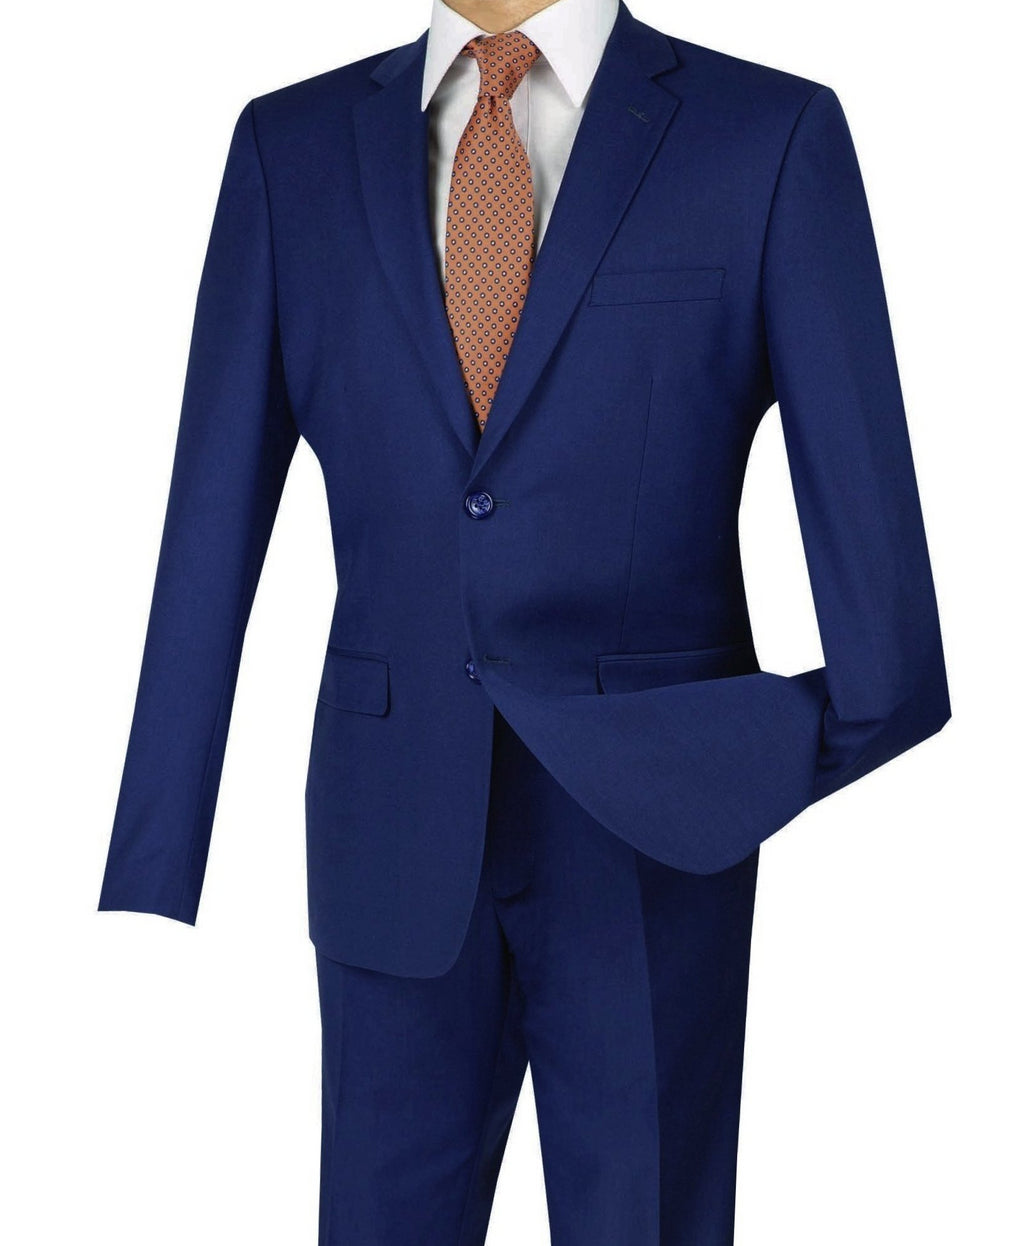 Solid Indigo Ultra Slim Fit Men's Business Suit - SUITS OUTLETS